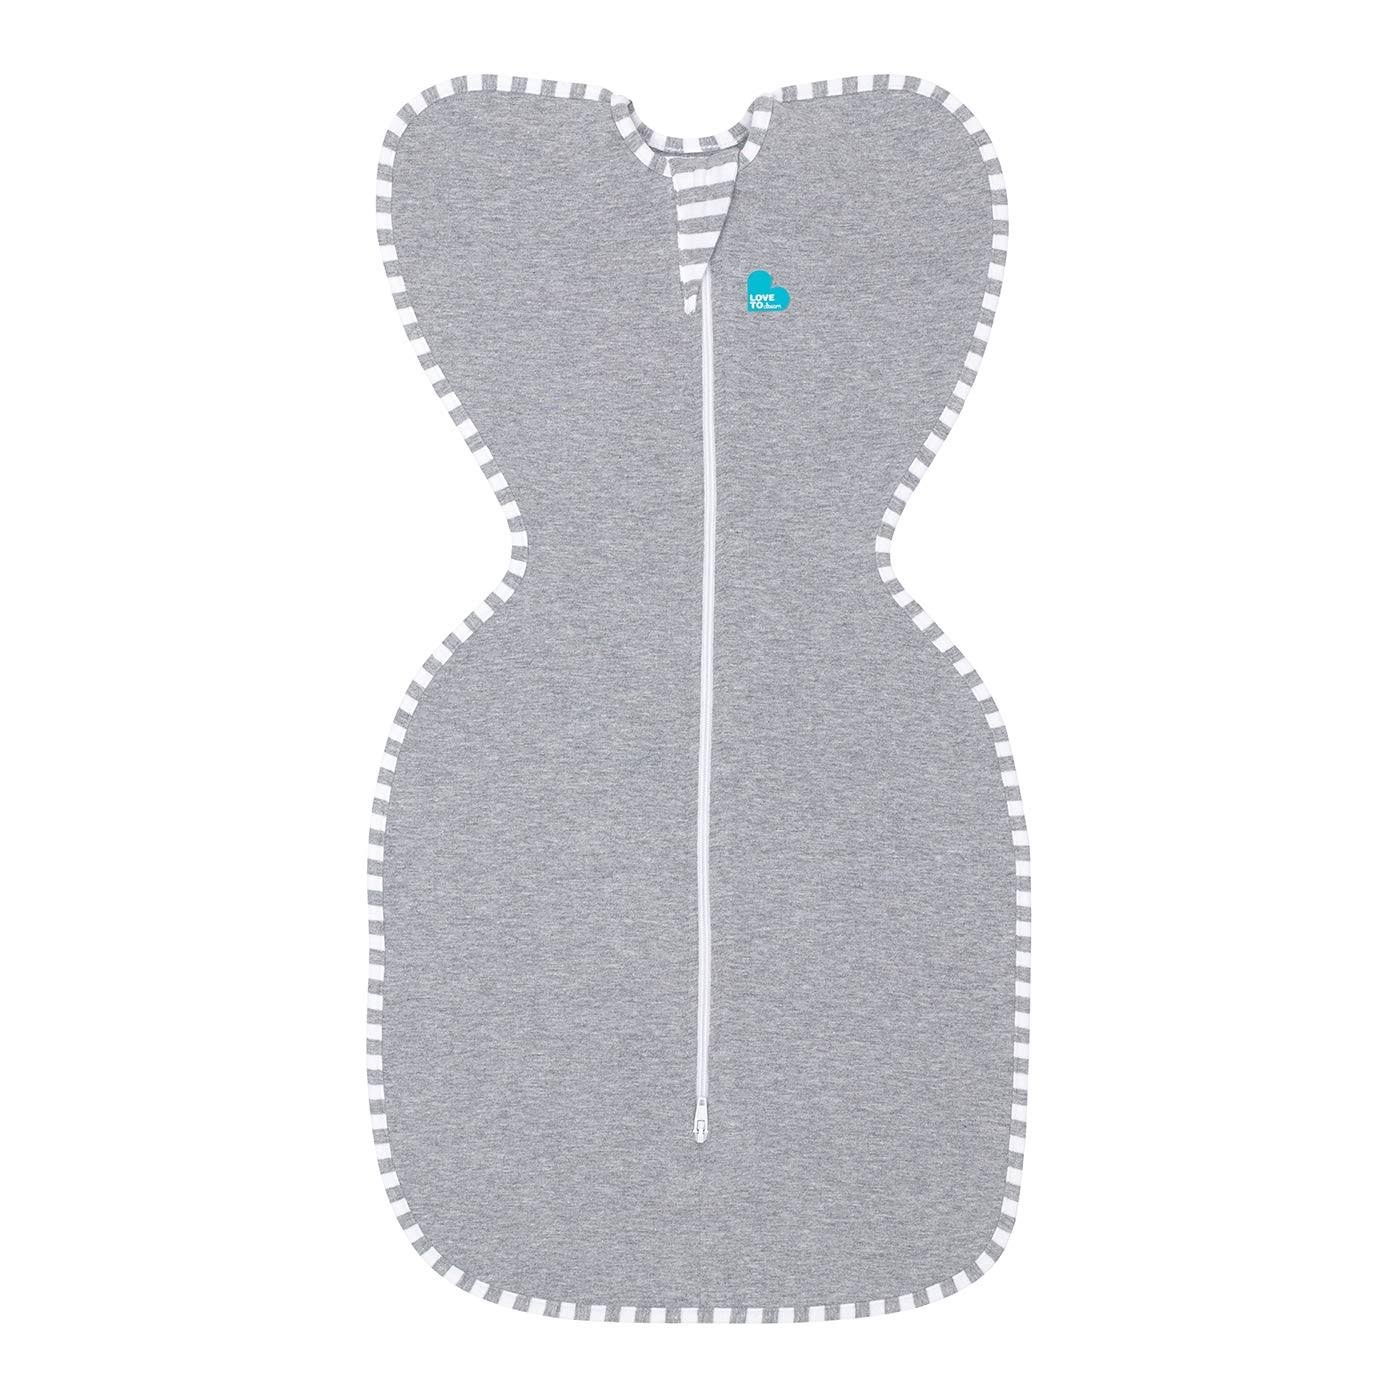 Love To Dream Swaddle UP Original Sleep Sack - Grey, X-Small